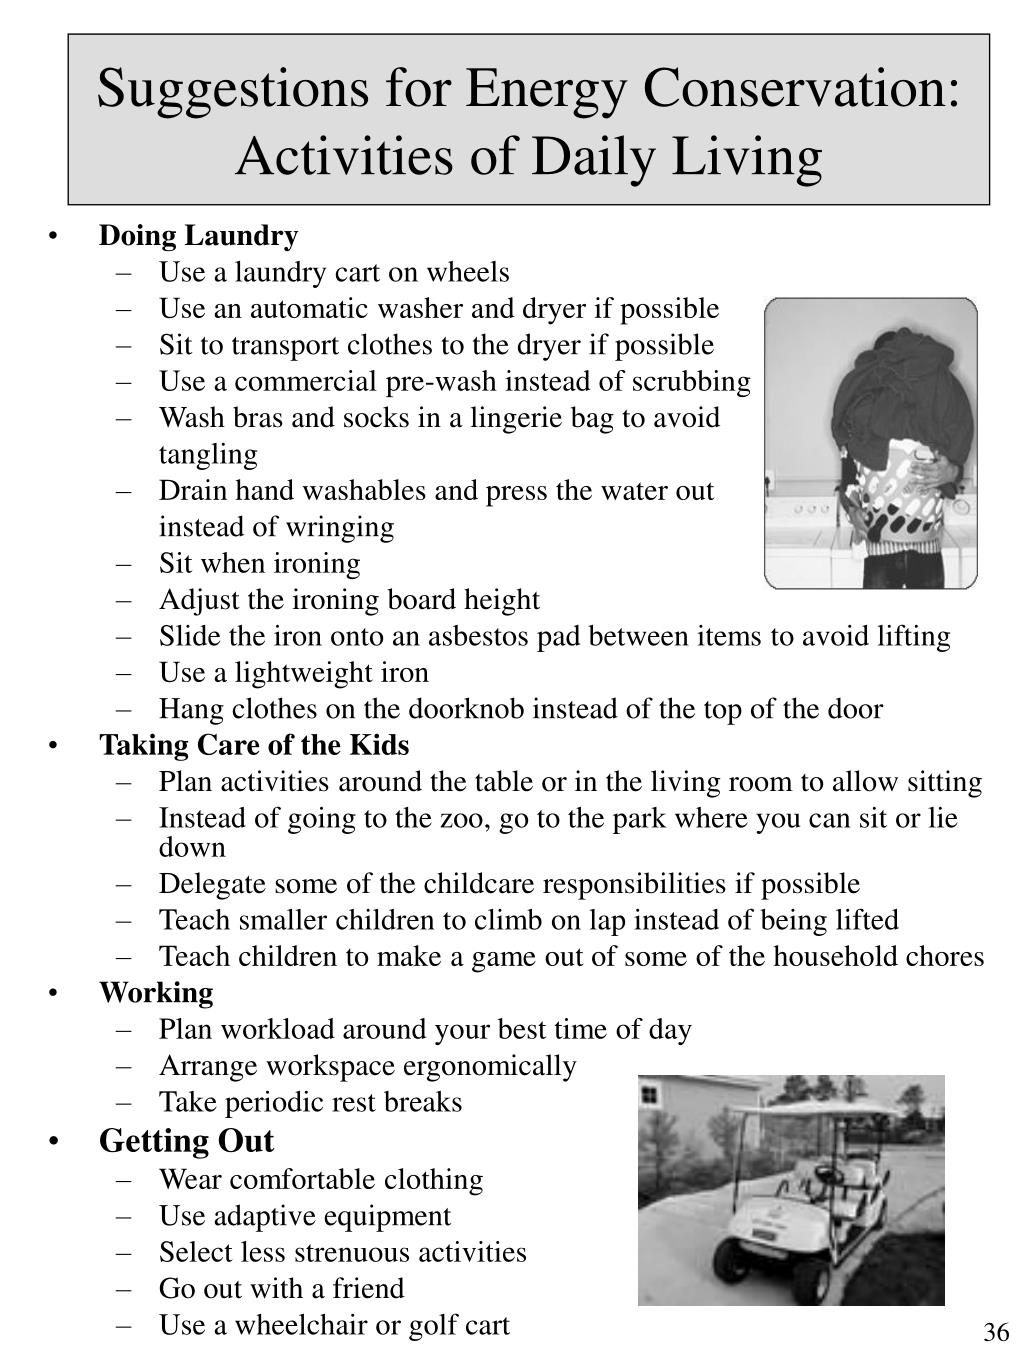 Suggestions for Energy Conservation: Activities of Daily Living